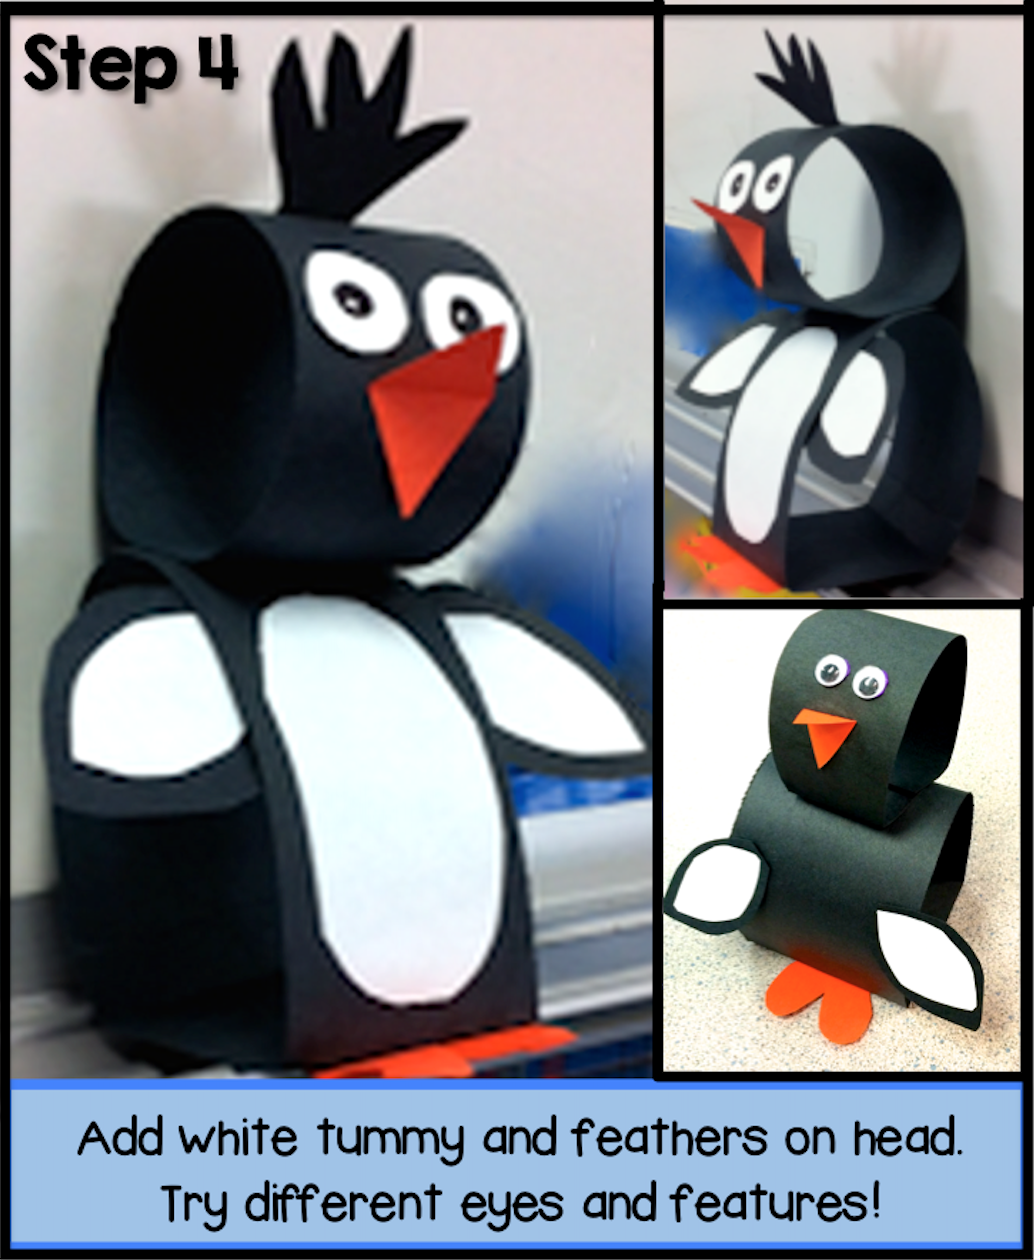 Pop-Up Penguins art project directions